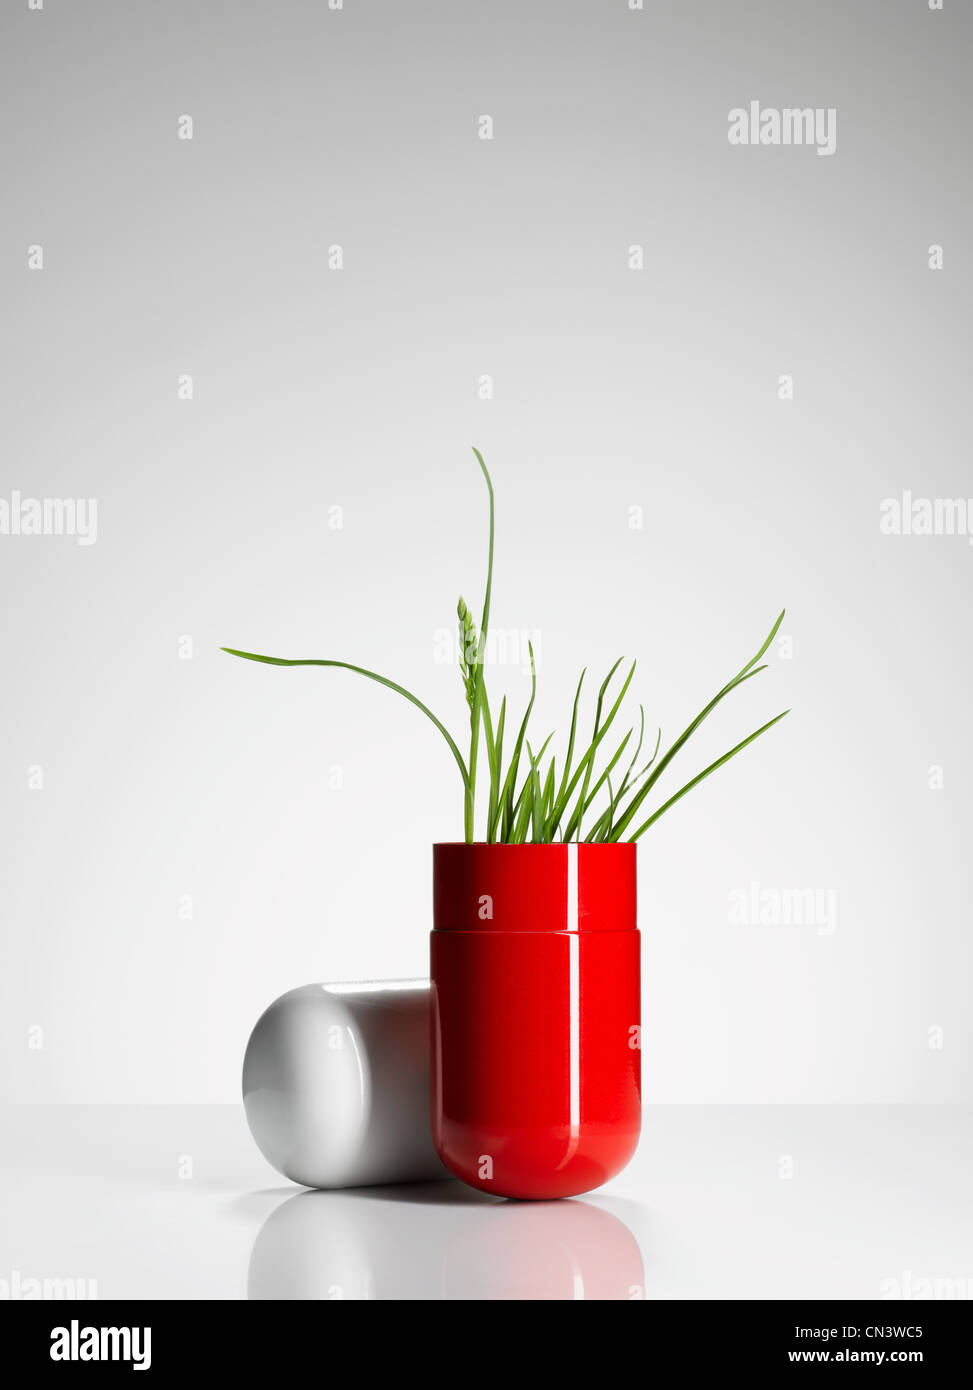 Plant growing out of red capsule - Stock Image